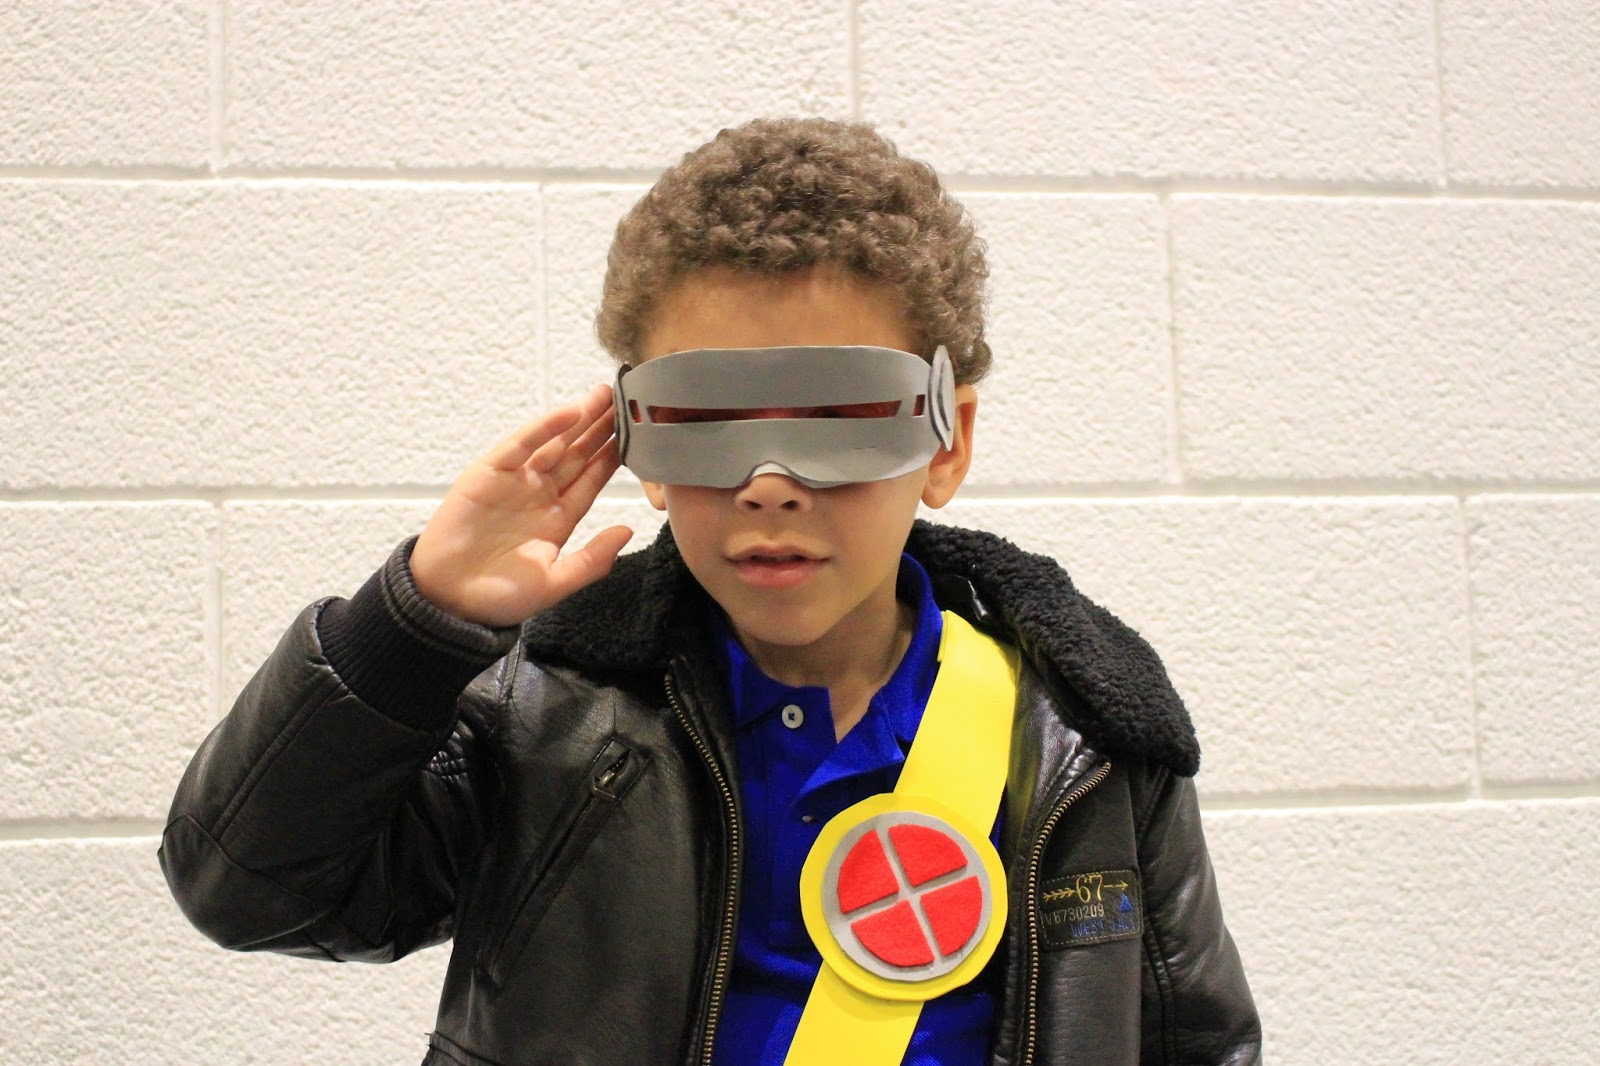 Lucas cosplaying at Cyclops at the London Super Comics Con